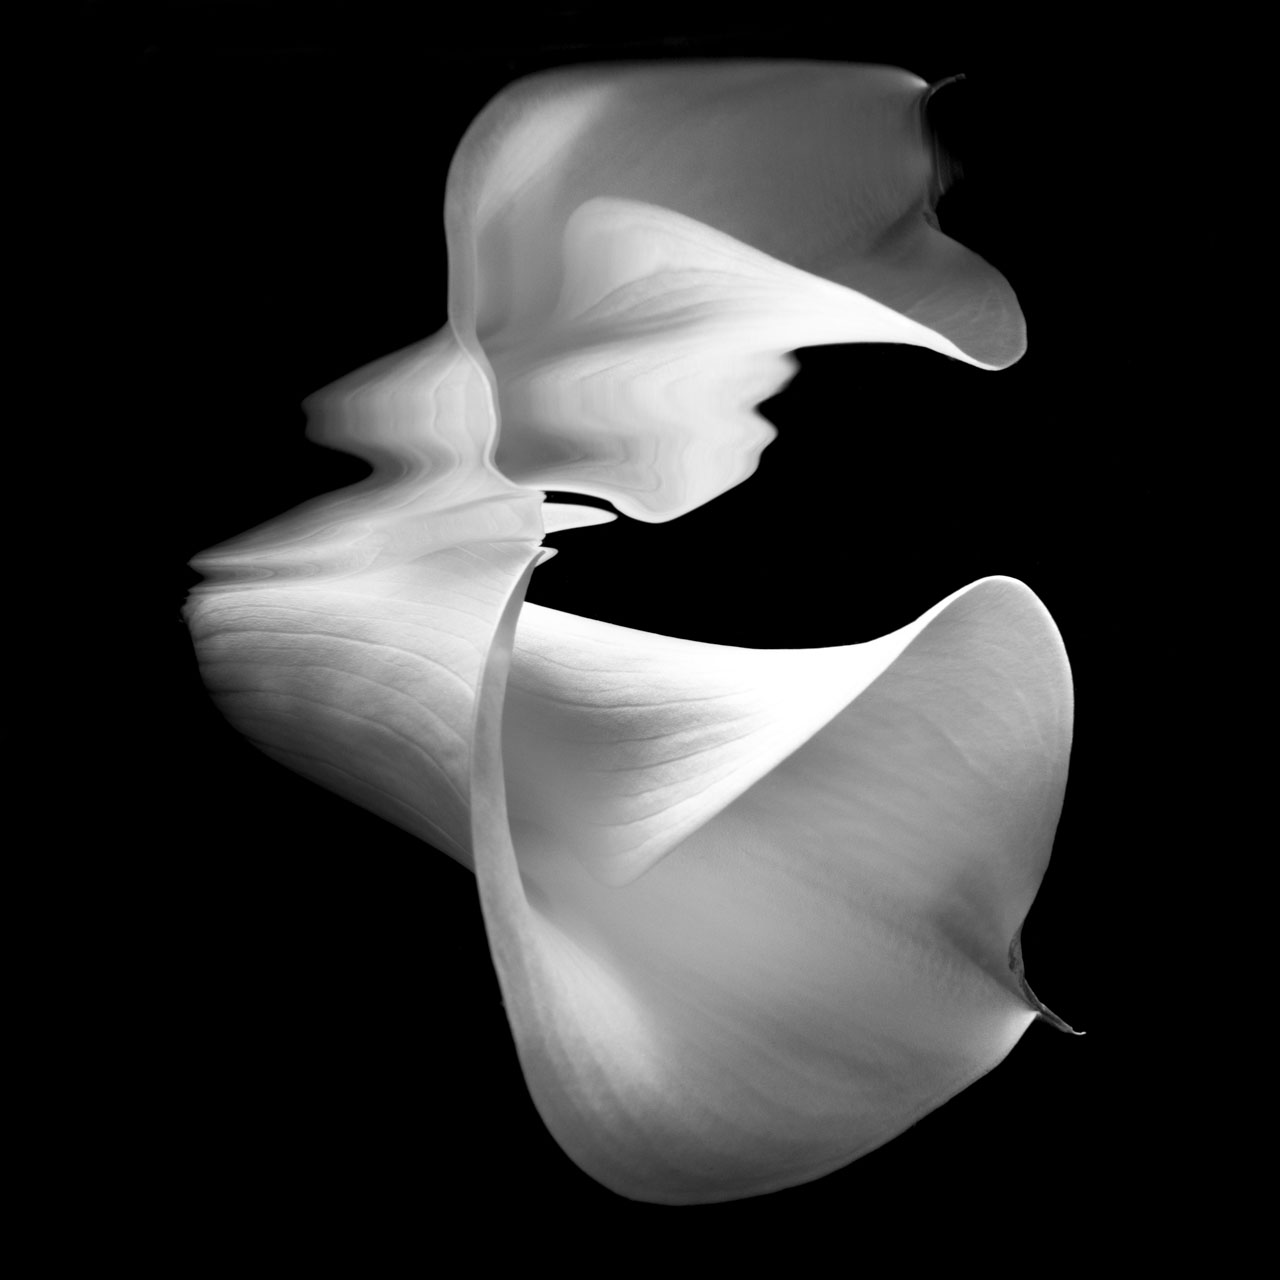 Fine art image of a white Cala lily reflecting underwater